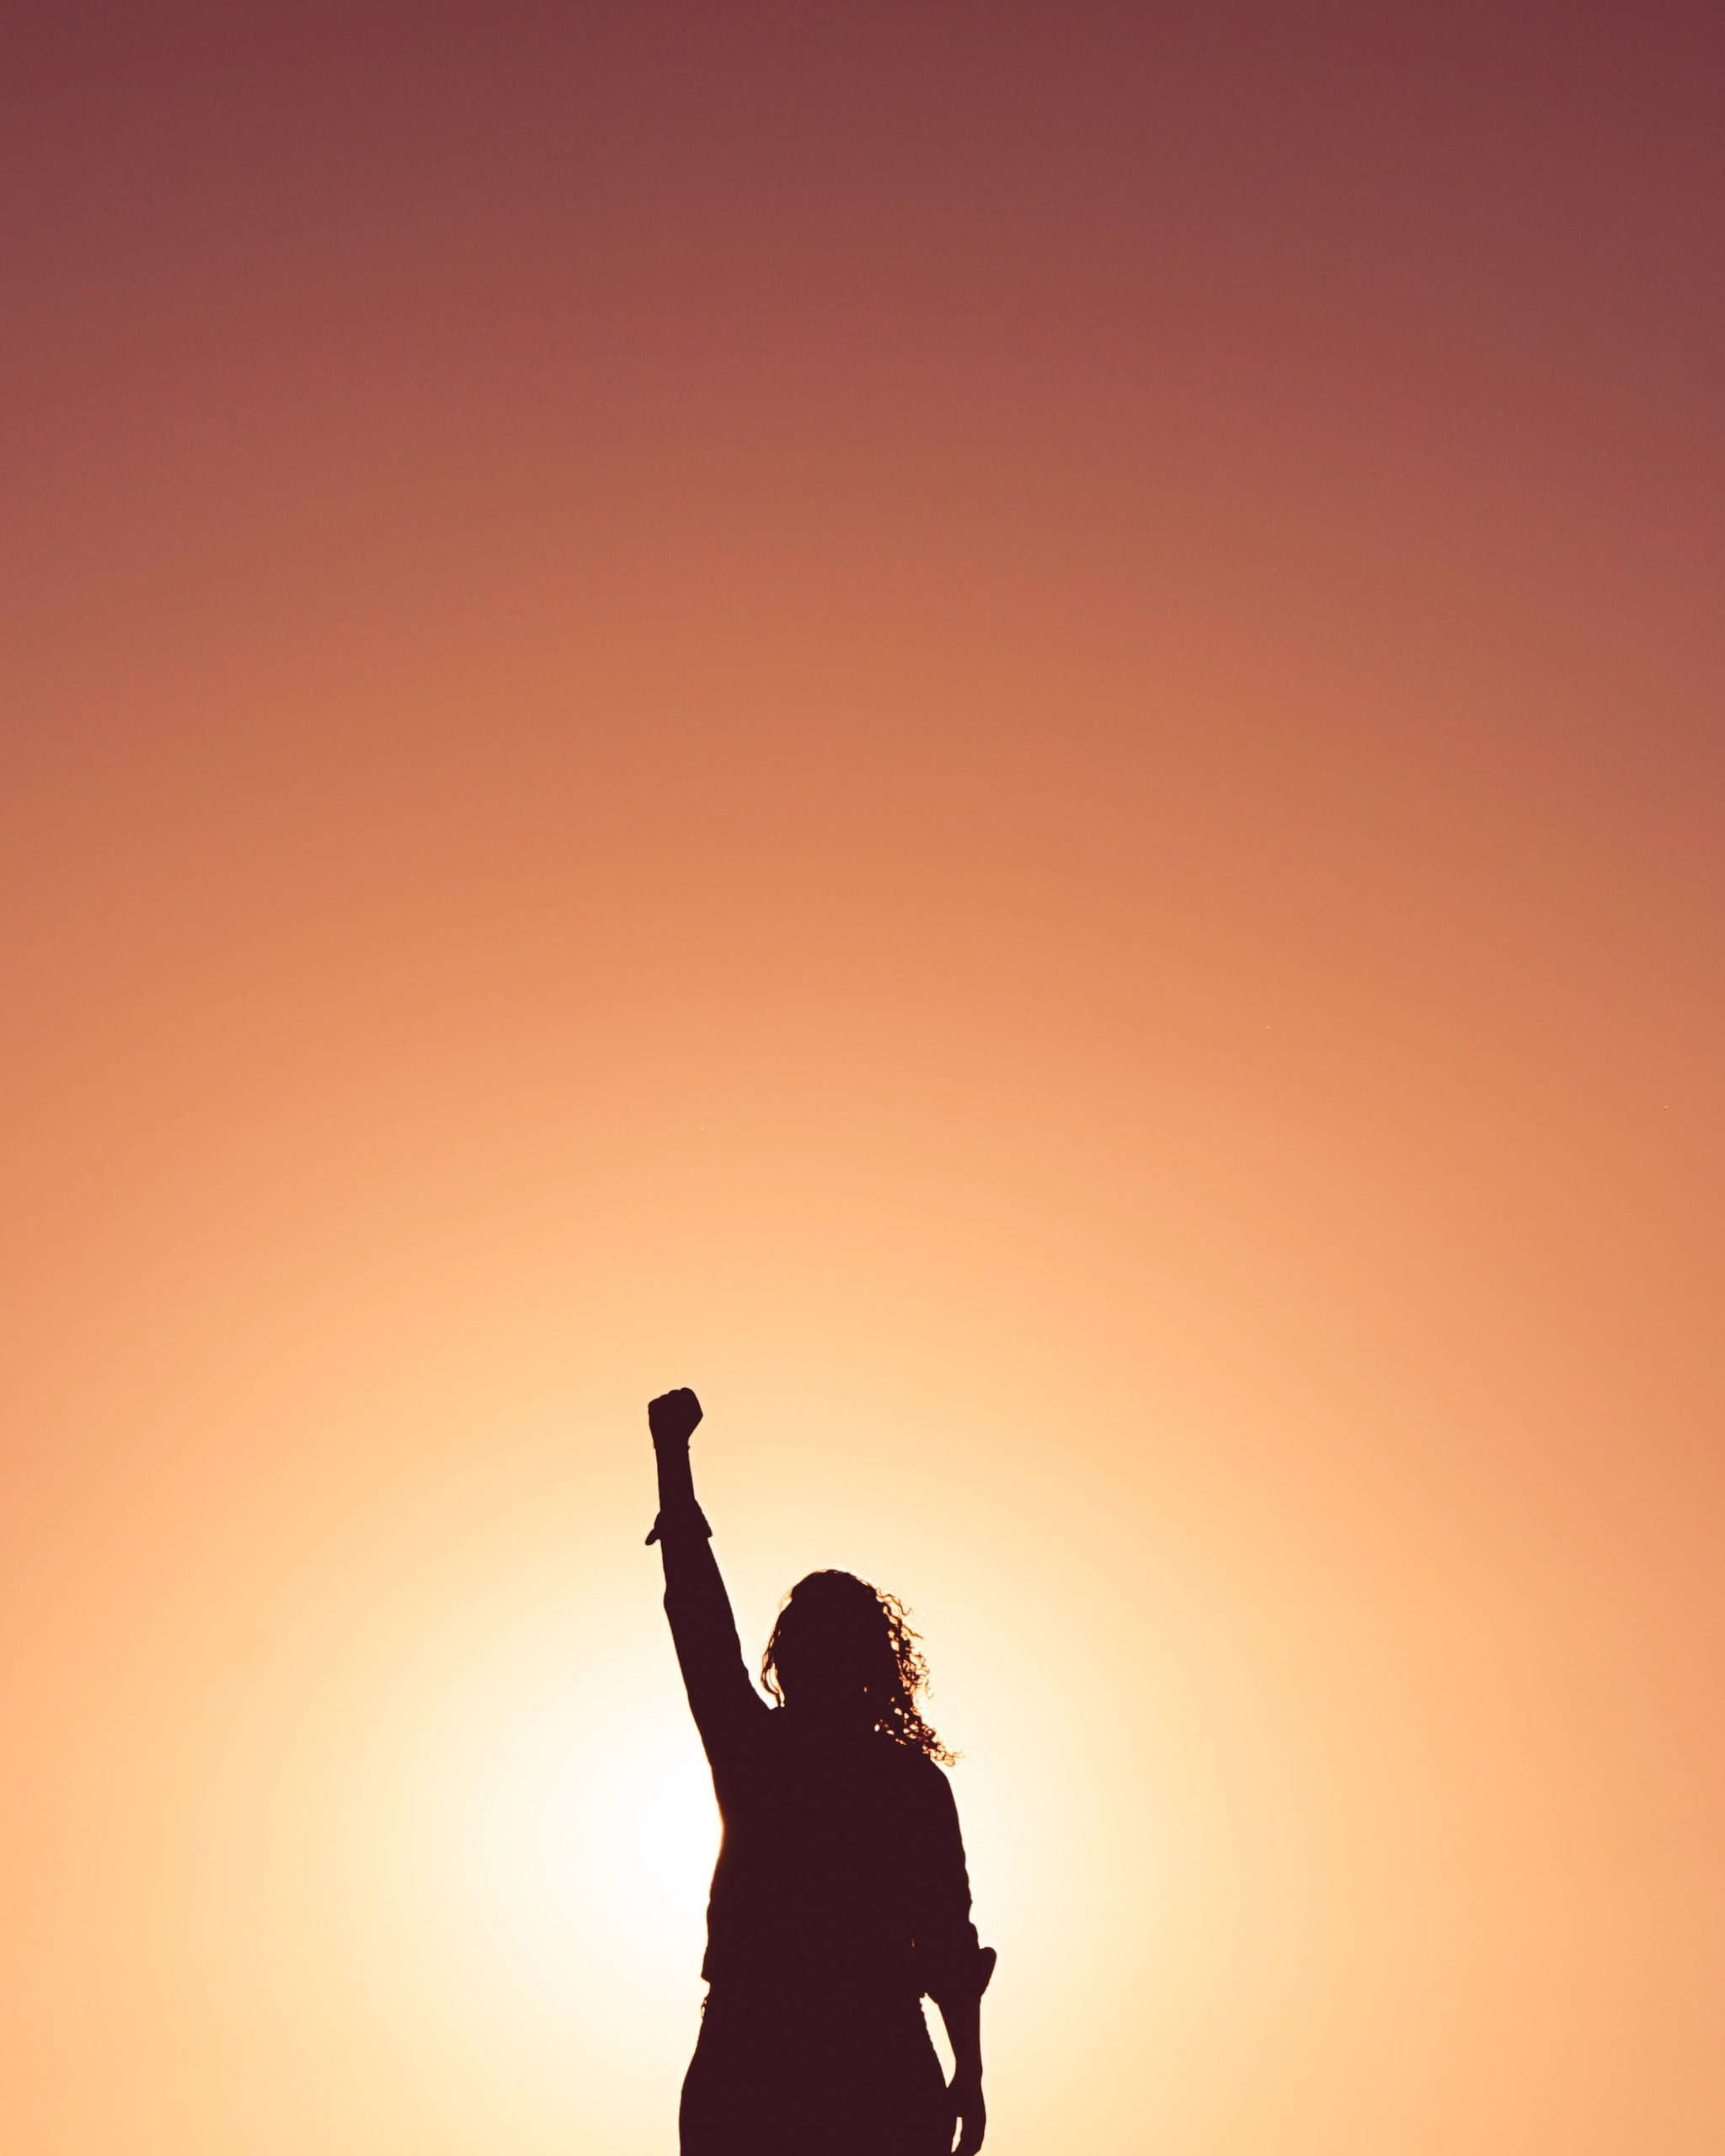 Woman raising fist in the air at sunset